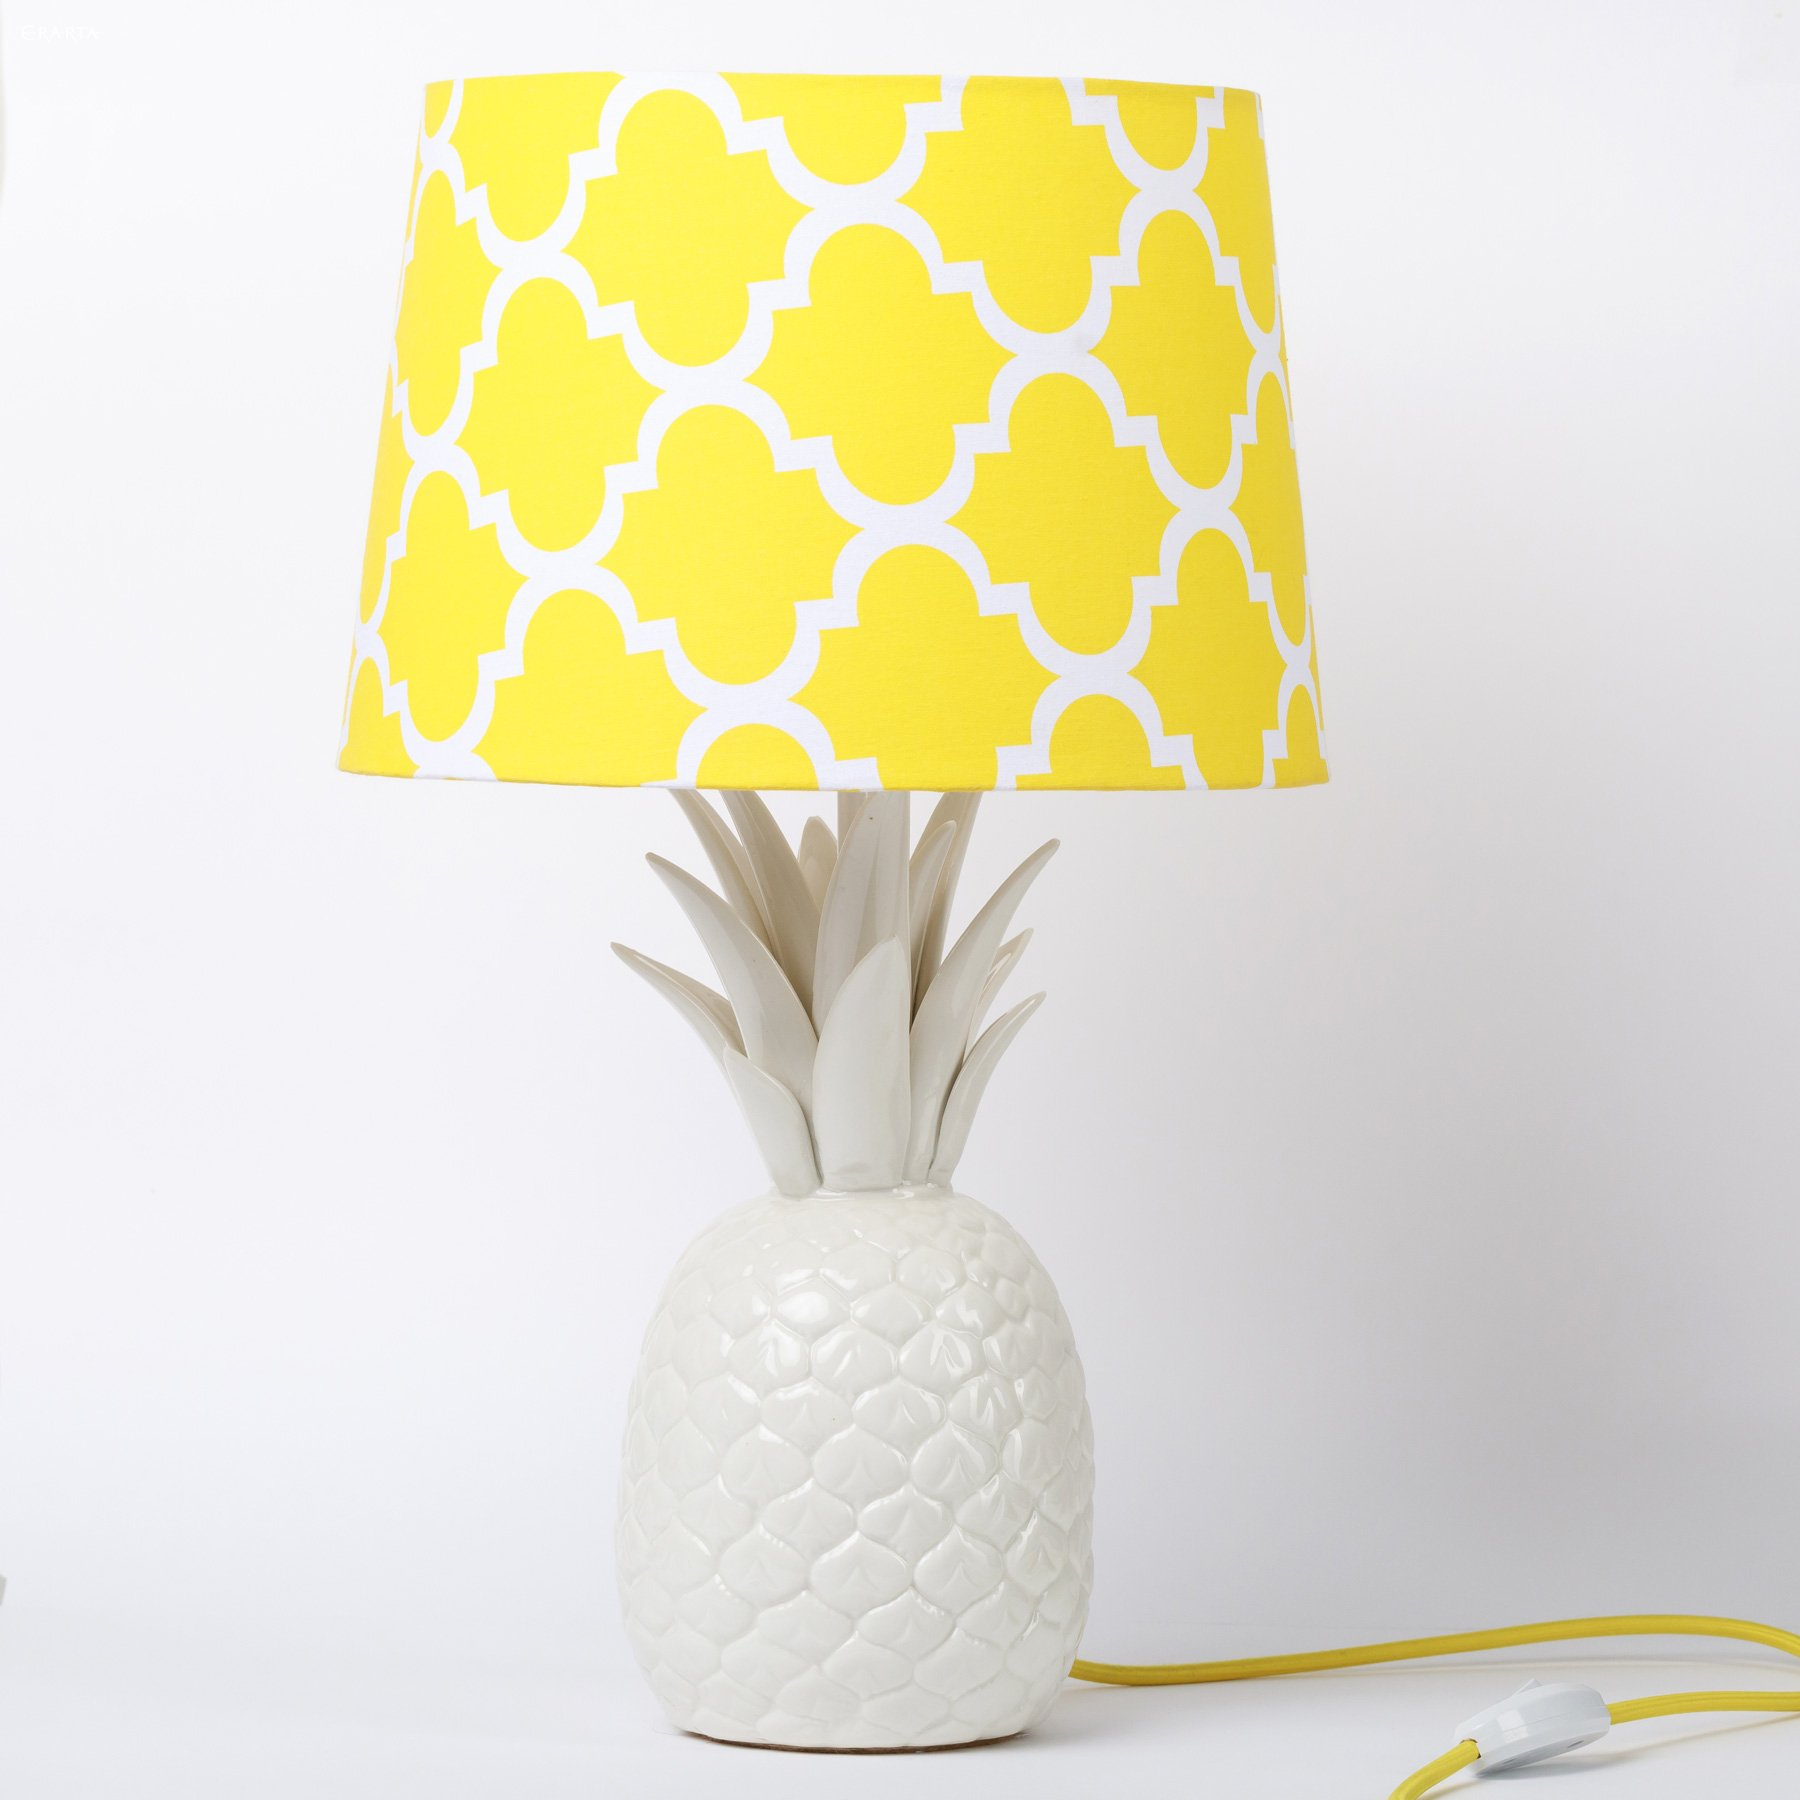 Lamp «Pineapple», artist